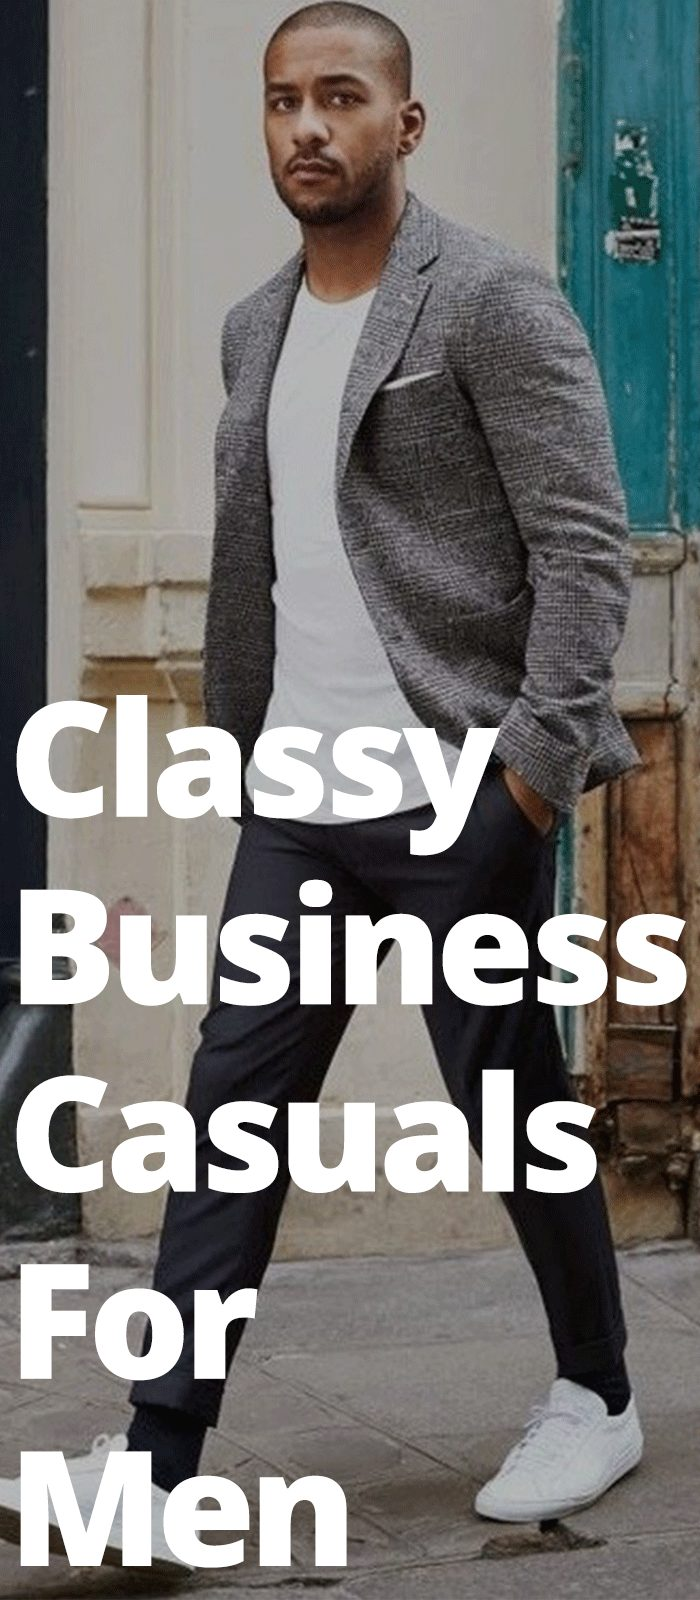 Classy-Business-Casuals-For-Men